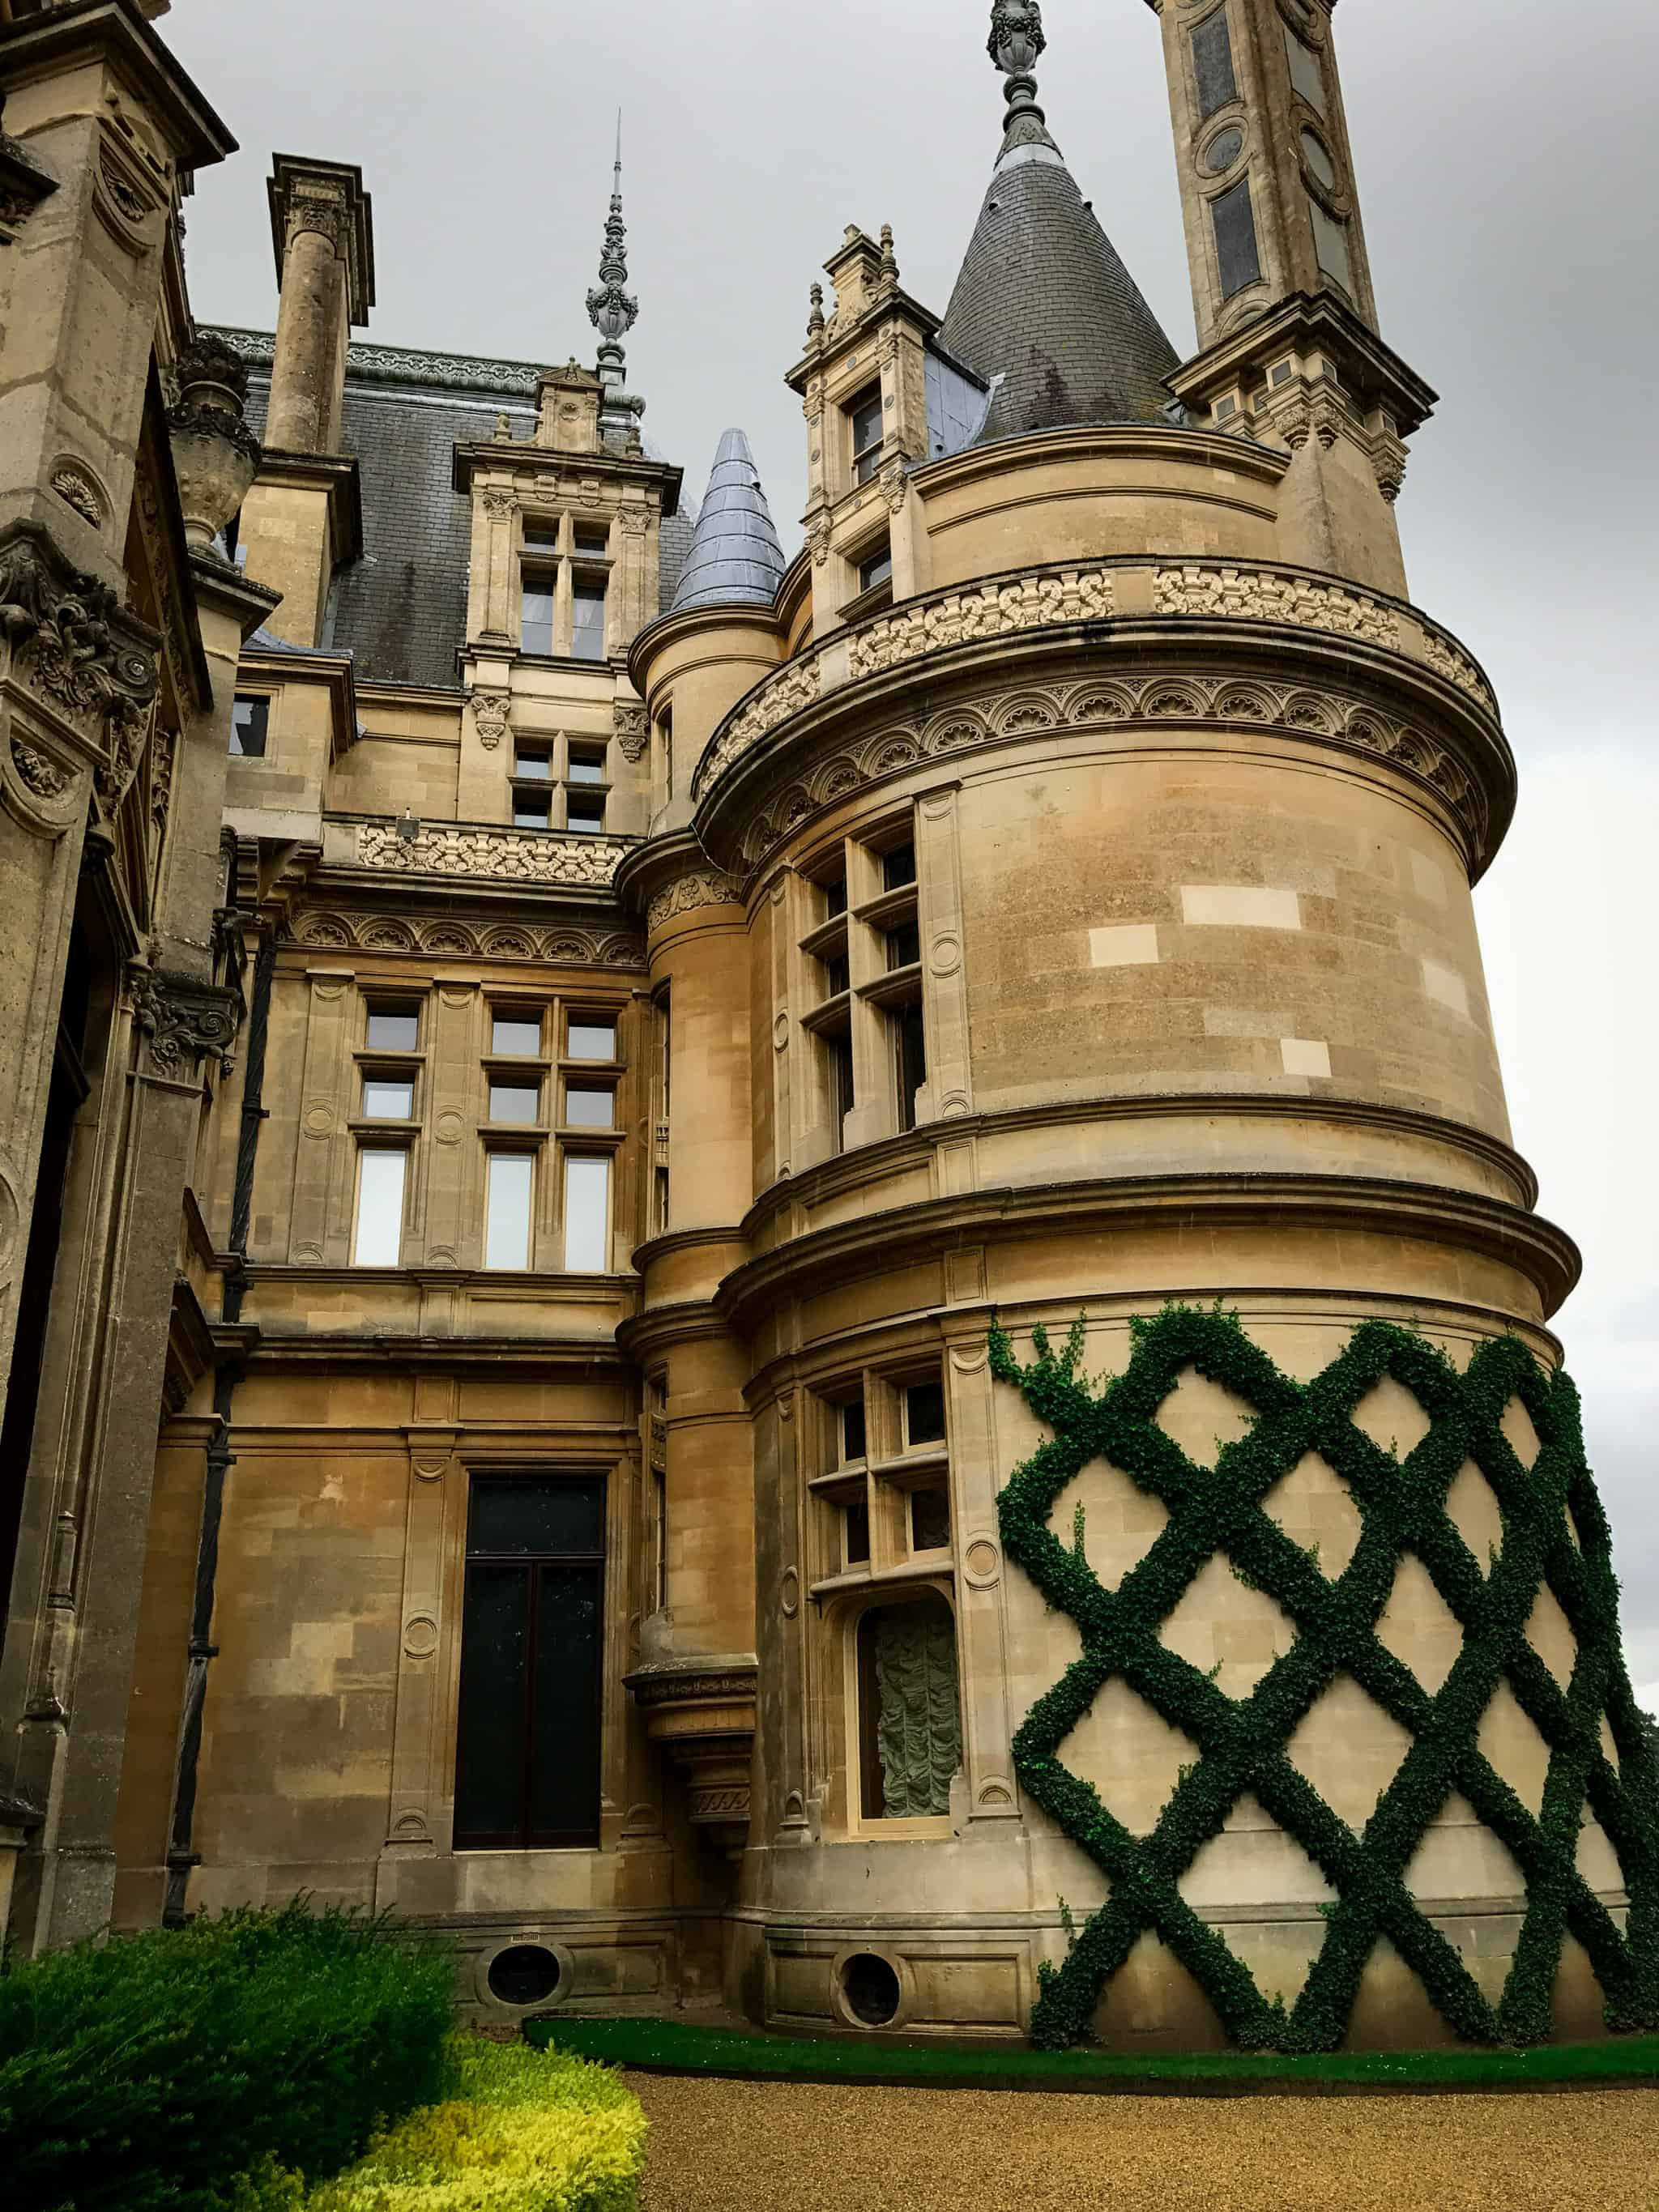 Impressive Waddesdon Manor House in Buckinghamshire | via @annabanana.co